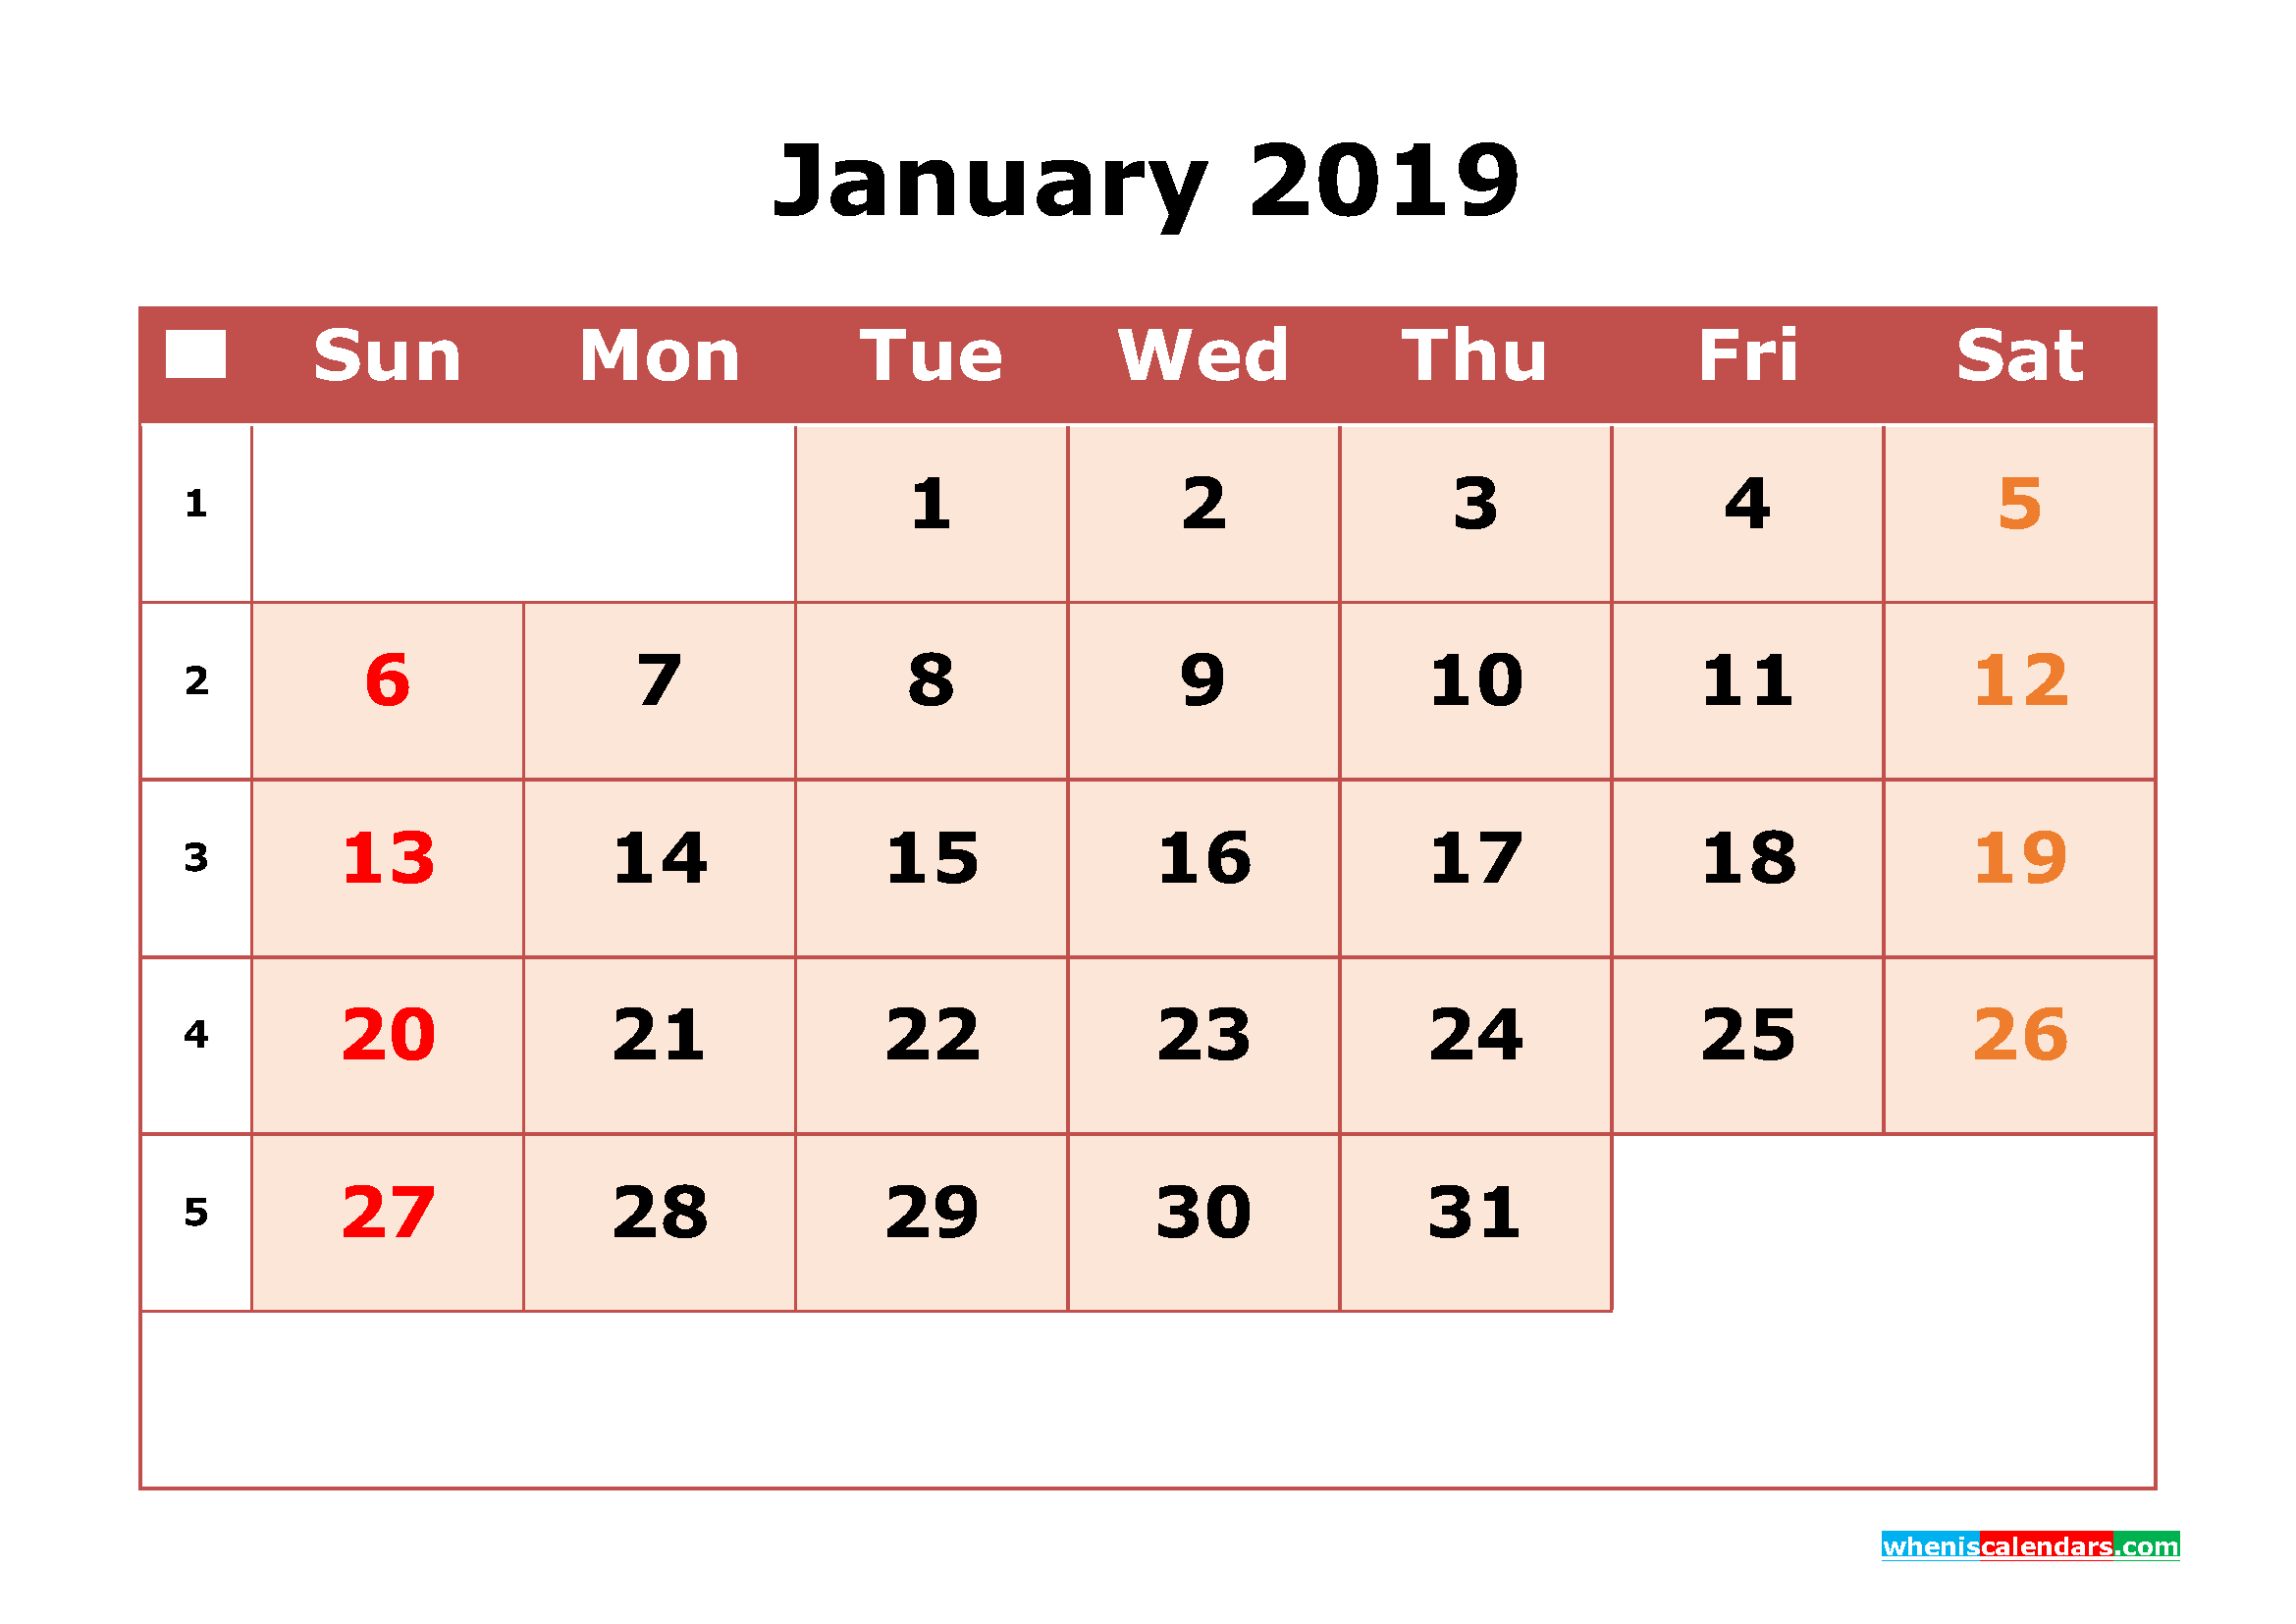 get free january 2019 printable calendar with week numbers as pdf image